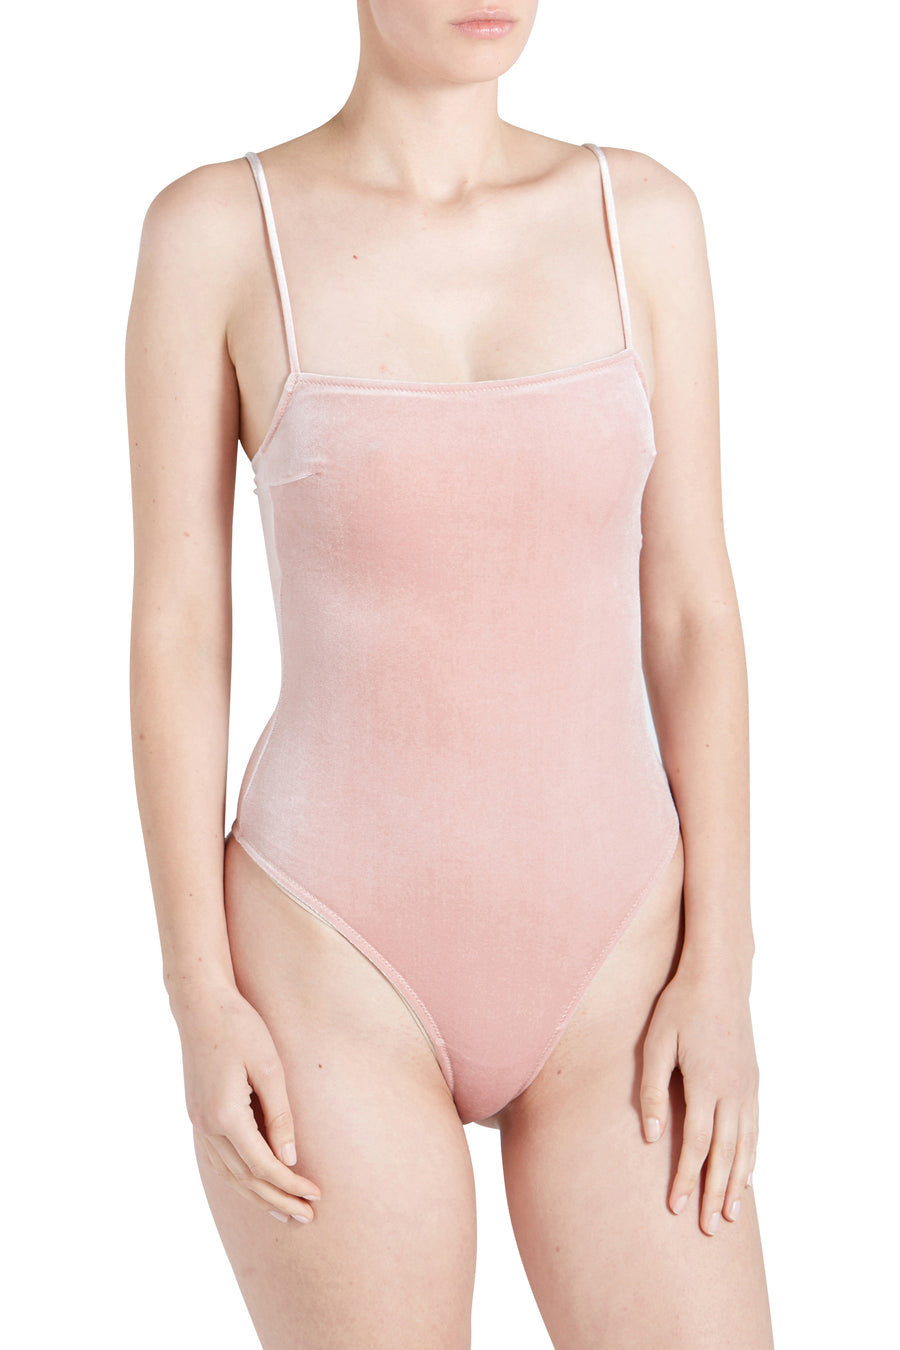 STRAIGHT NCK BODYSUIT